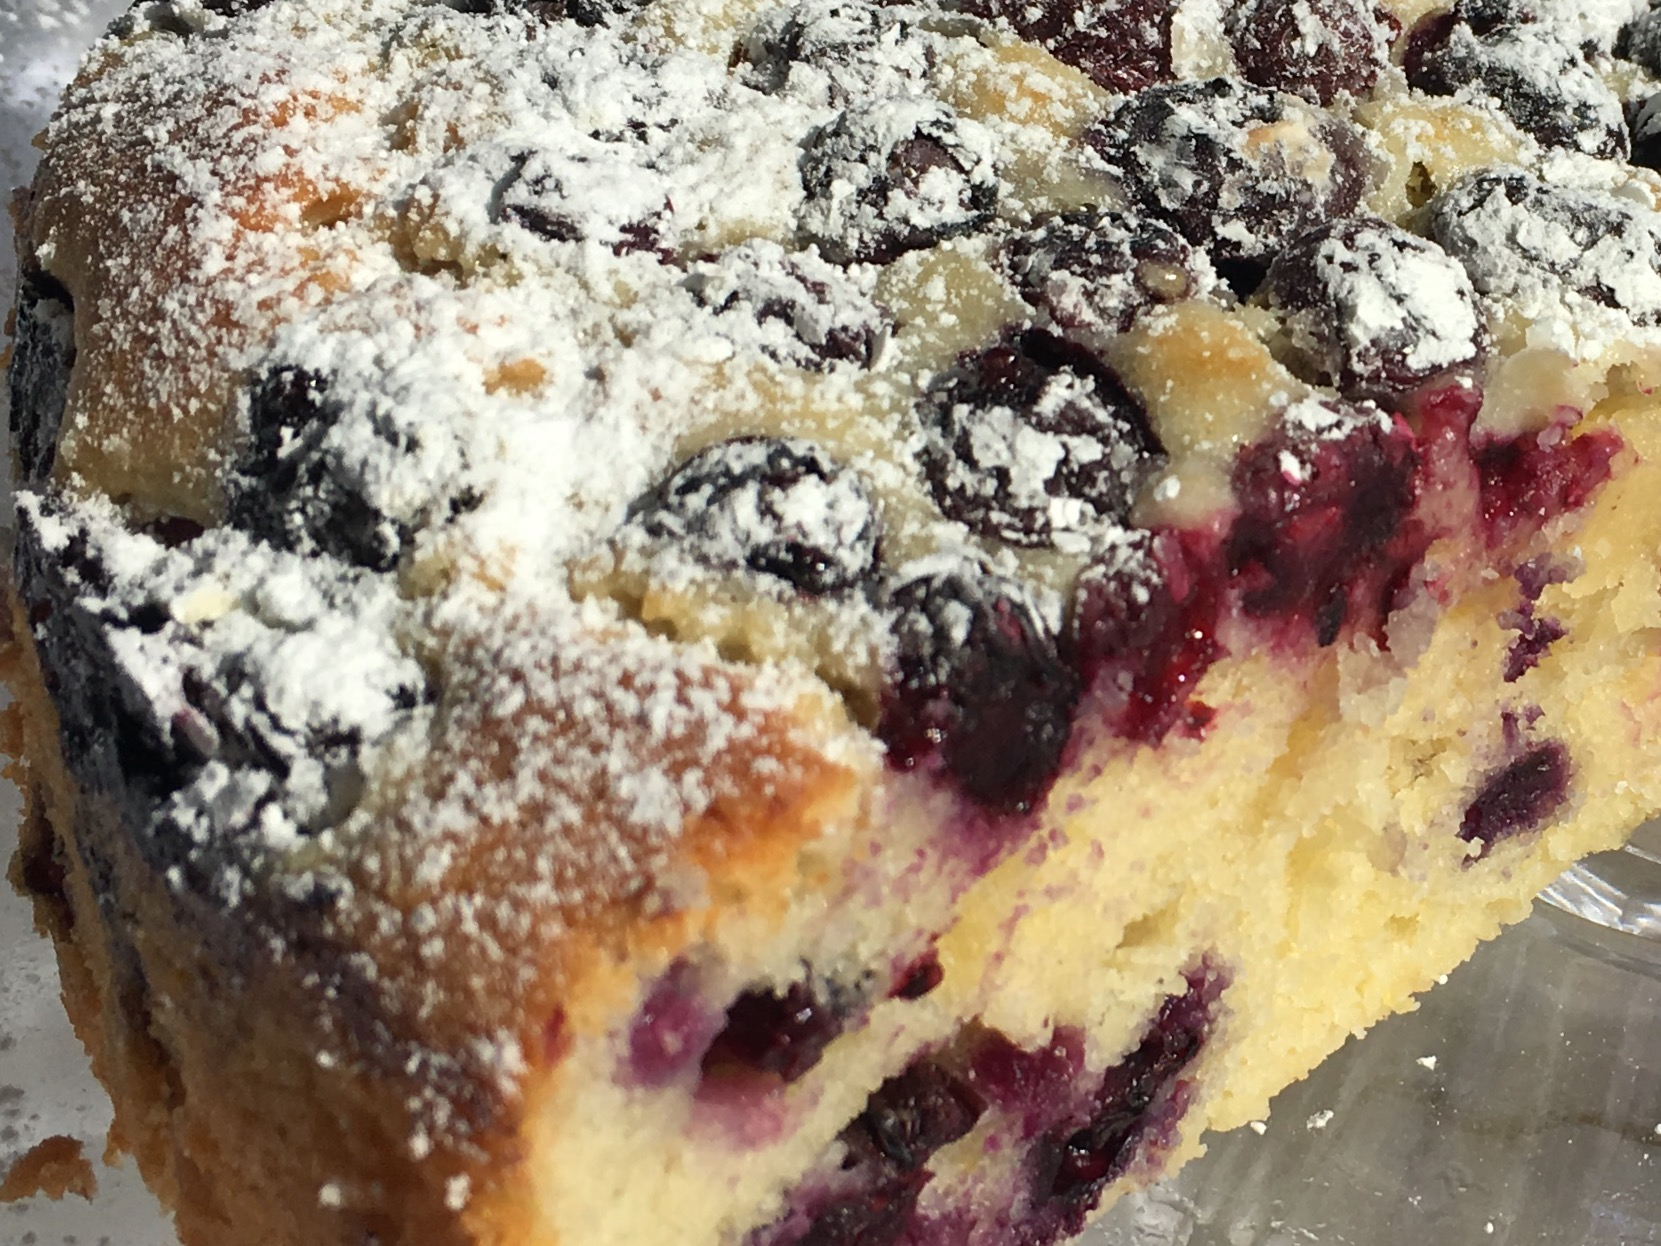 Homemade Blueberry cake with powdered sugar on top